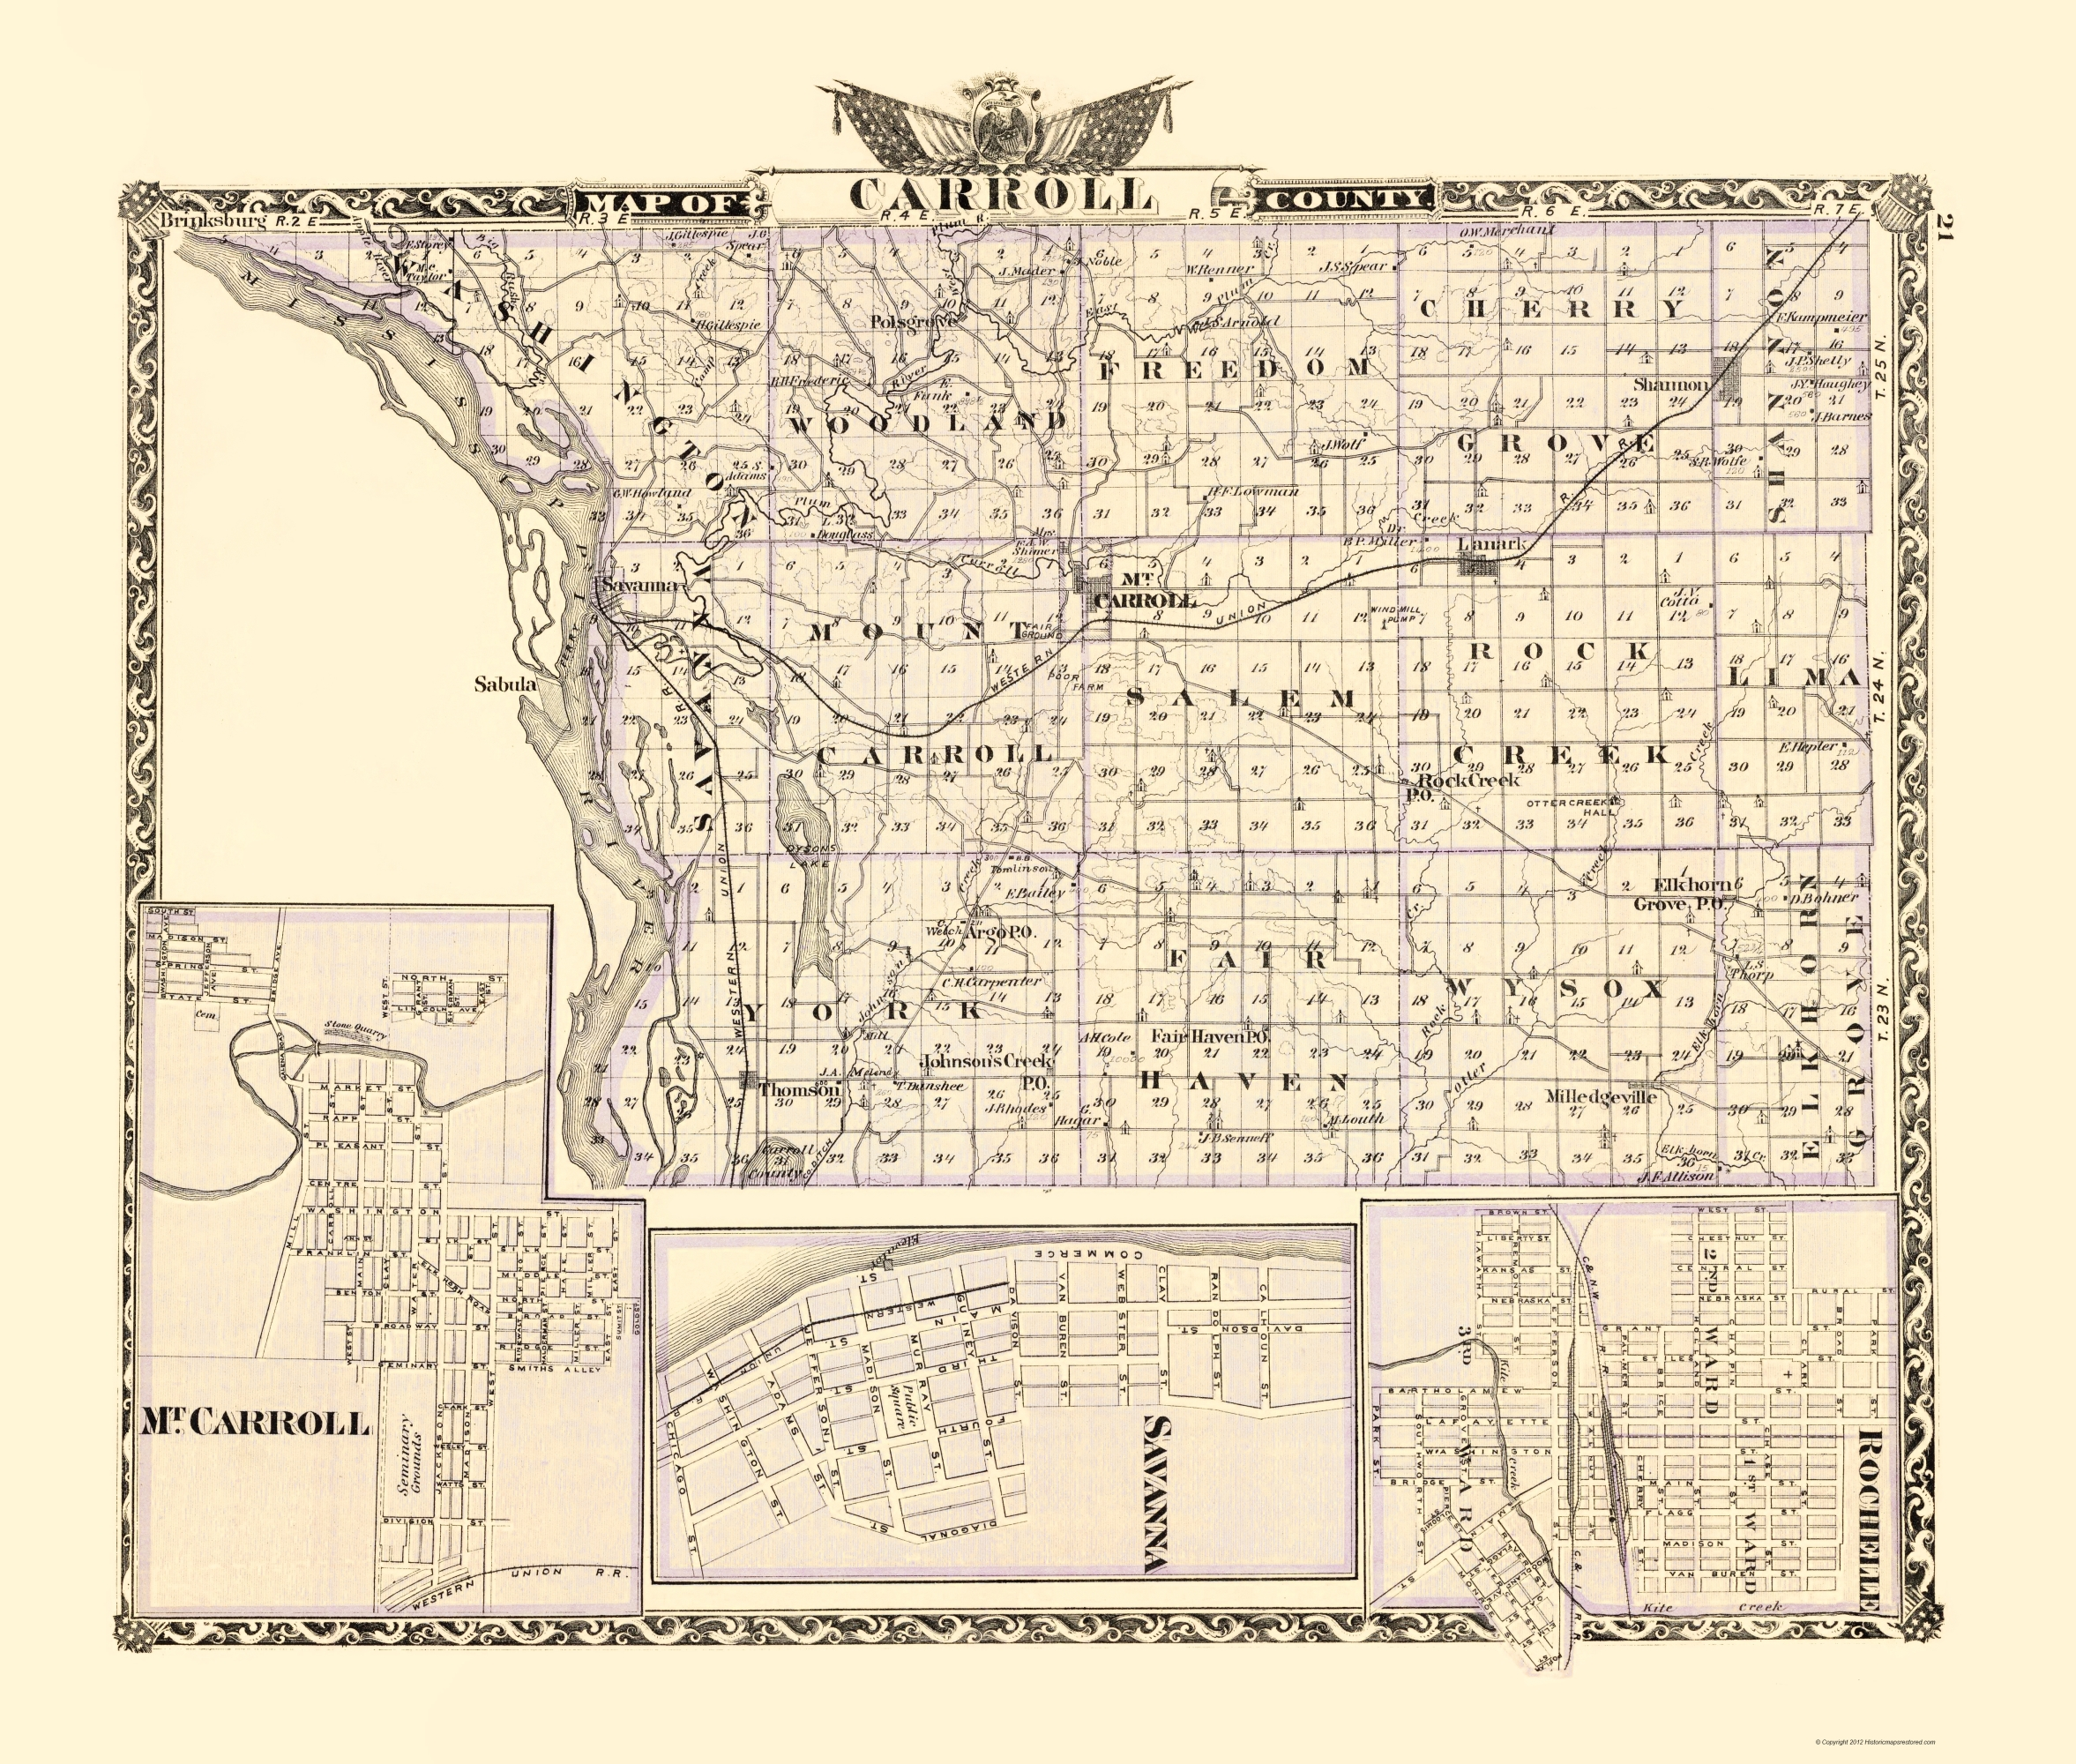 Old County Map - Carroll Illinois - Warner 1870 - 23 x 27.07 on il construction map, il concealed carry map, il route 66 map, il county map, il senate map, il u.s. representatives map, il water map, il weather map, il wi map, il michigan map, il map with cities, il general assembly map,